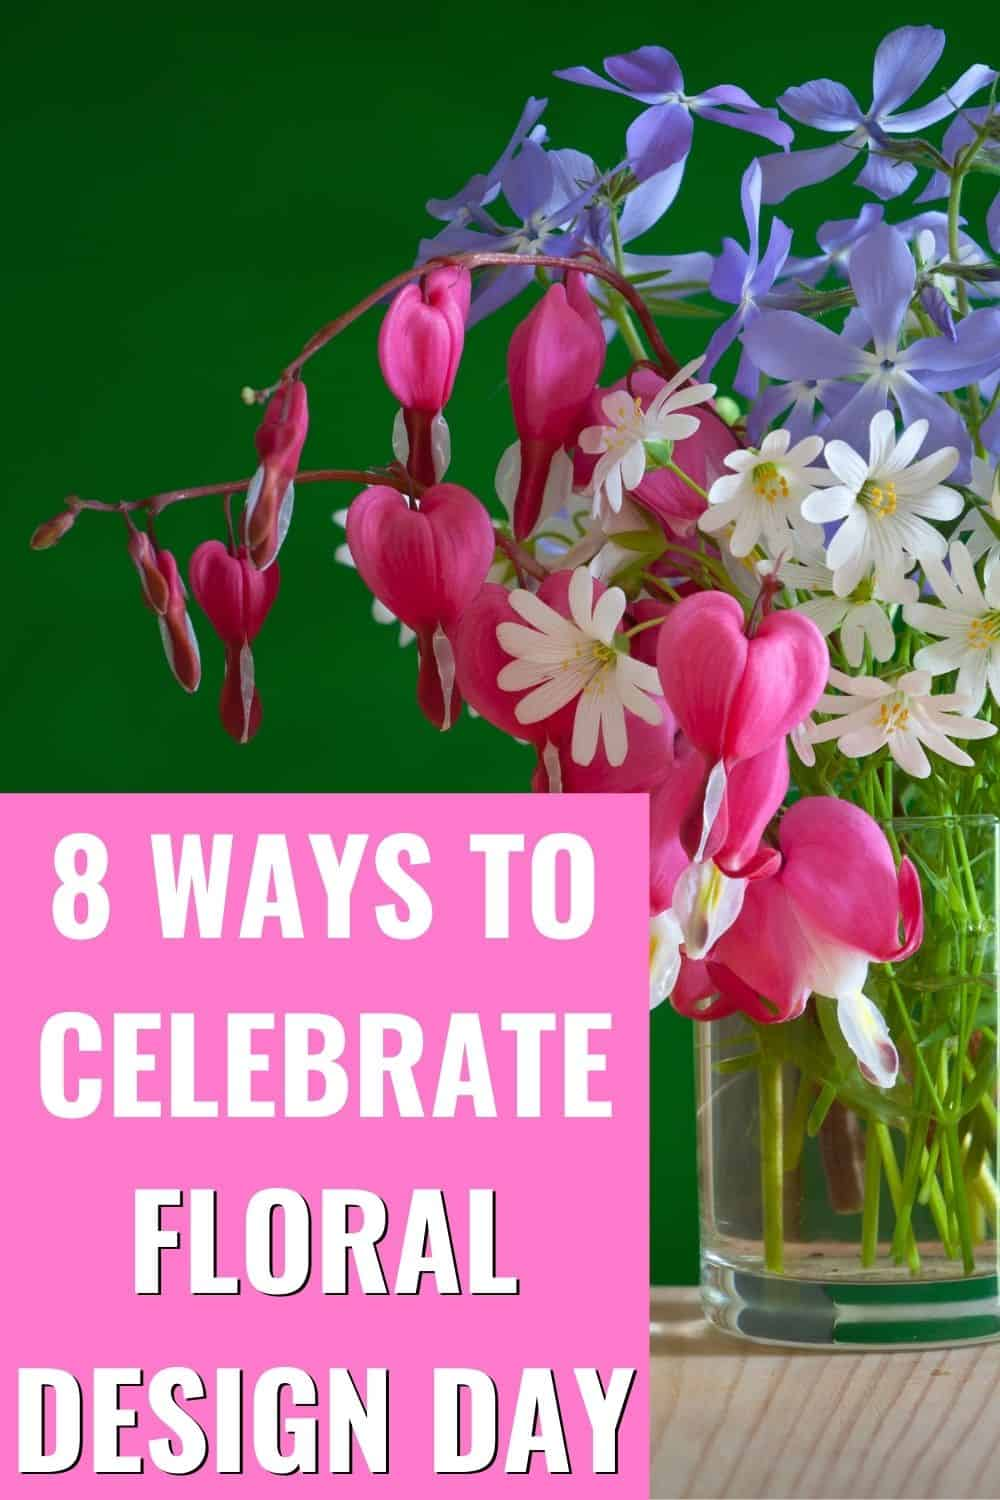 8 ways to celebrate floral design day